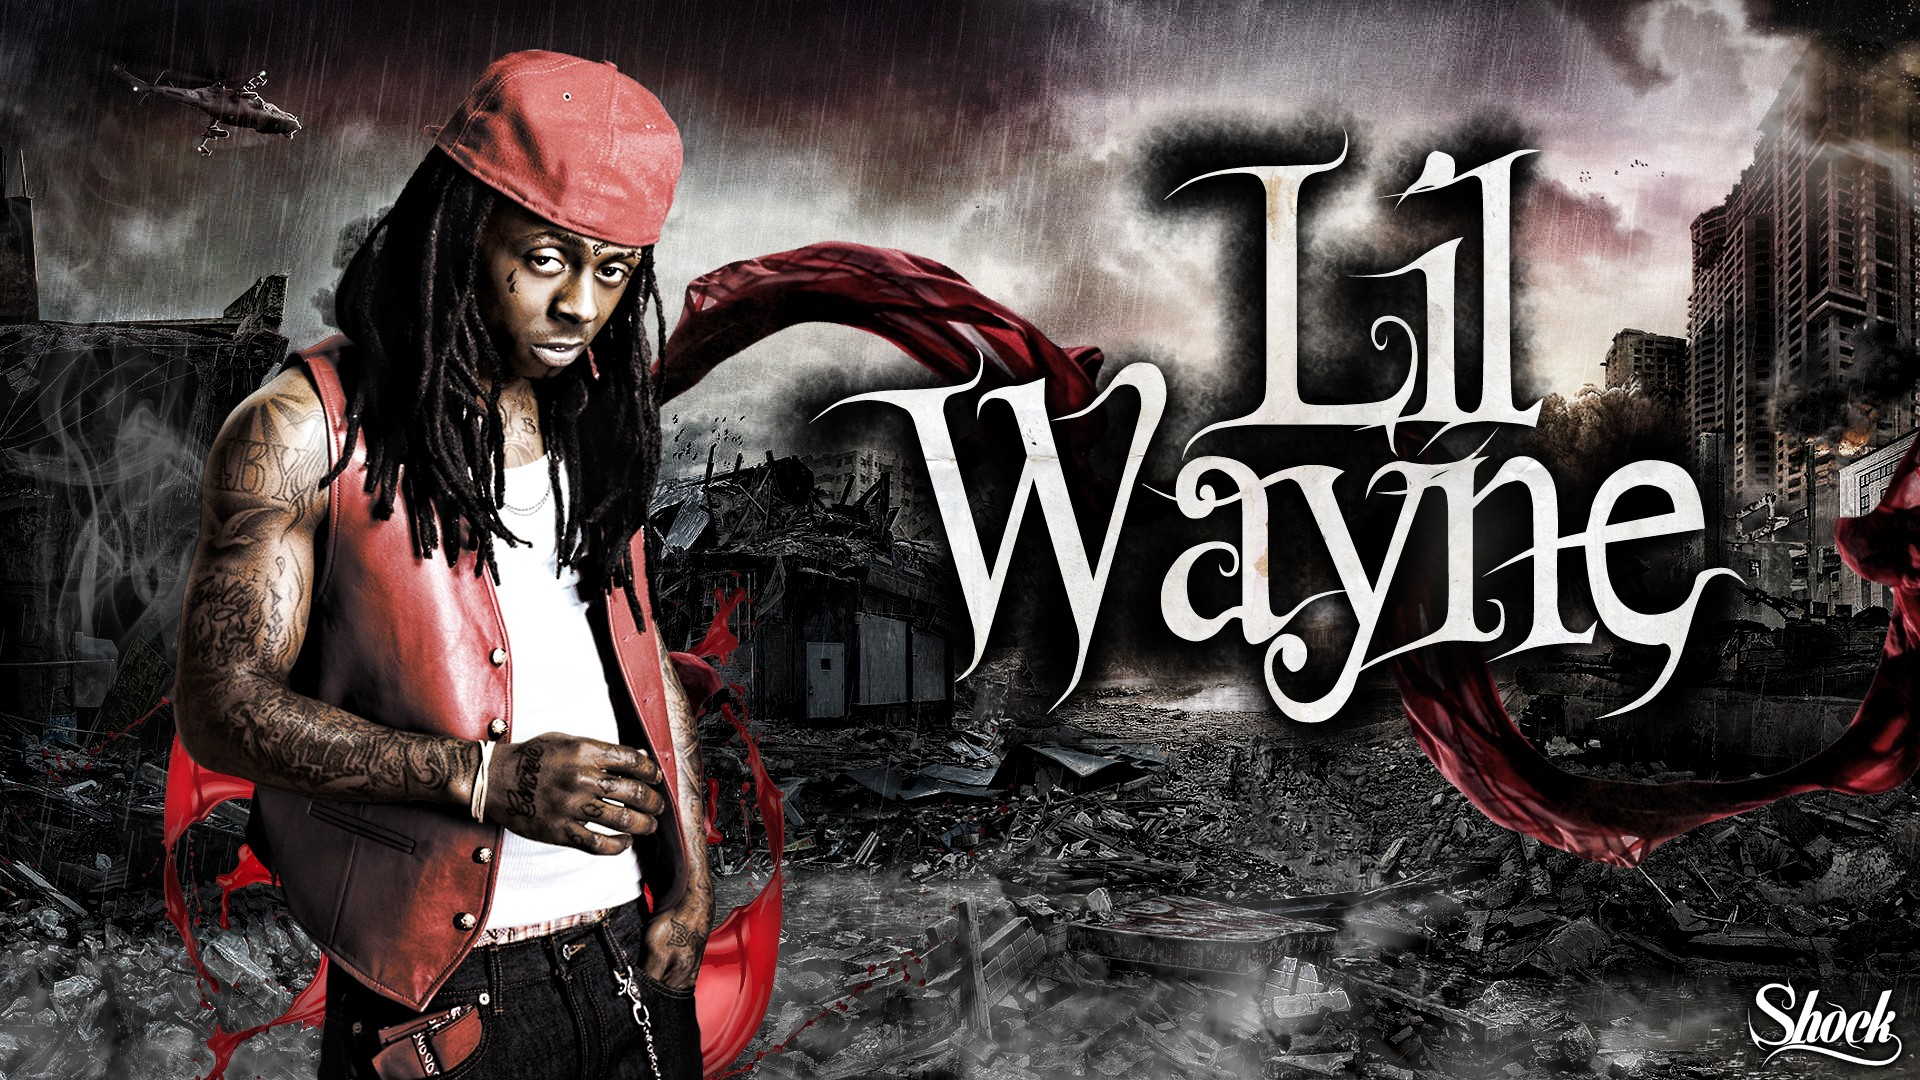 Download Lil Wayne HD 4 background for your phone iPhone android 1920x1080